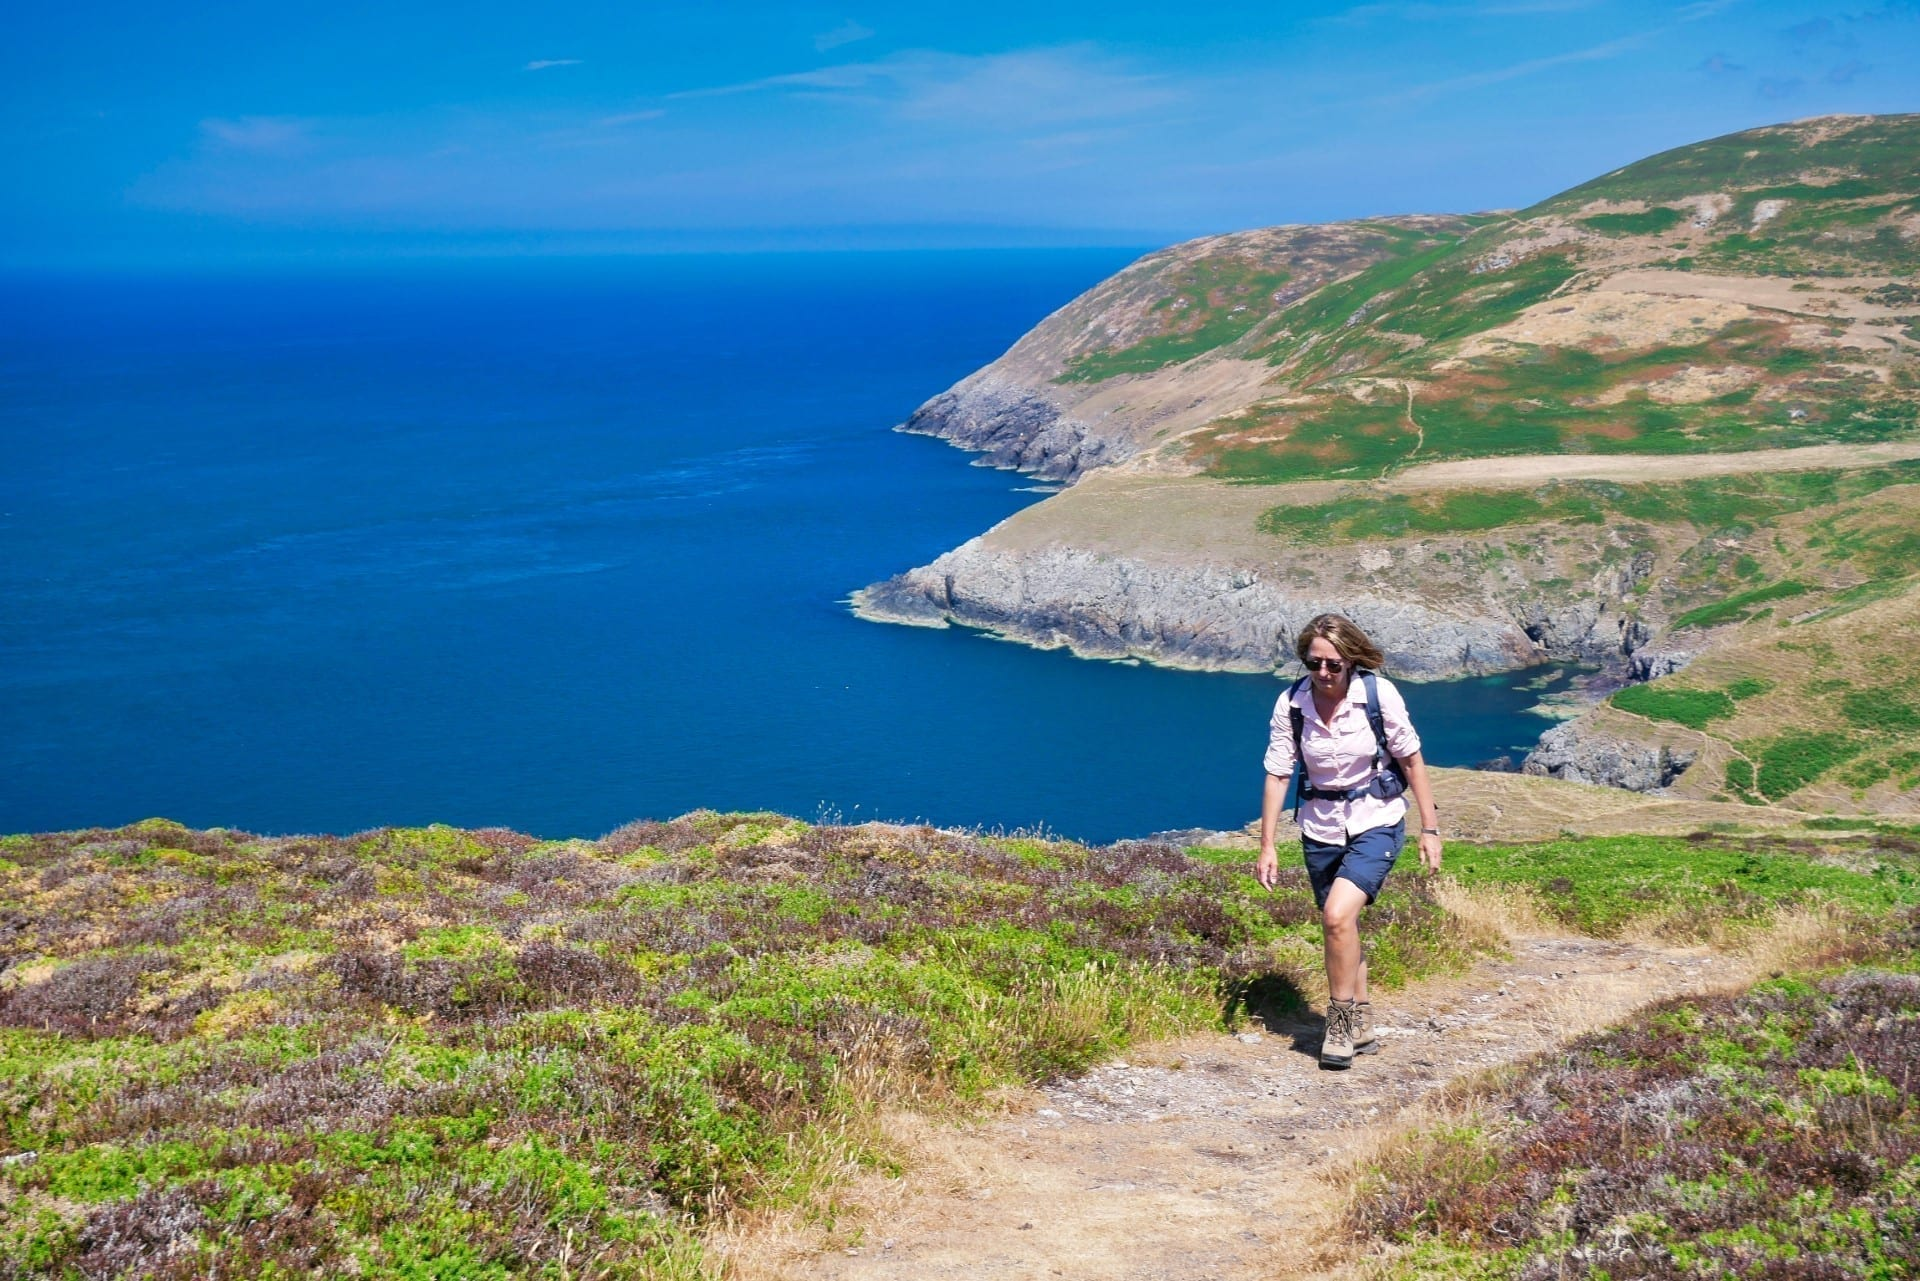 A single female walker on the Wales Coast Path on a sunny summer day with a blue sea and sky